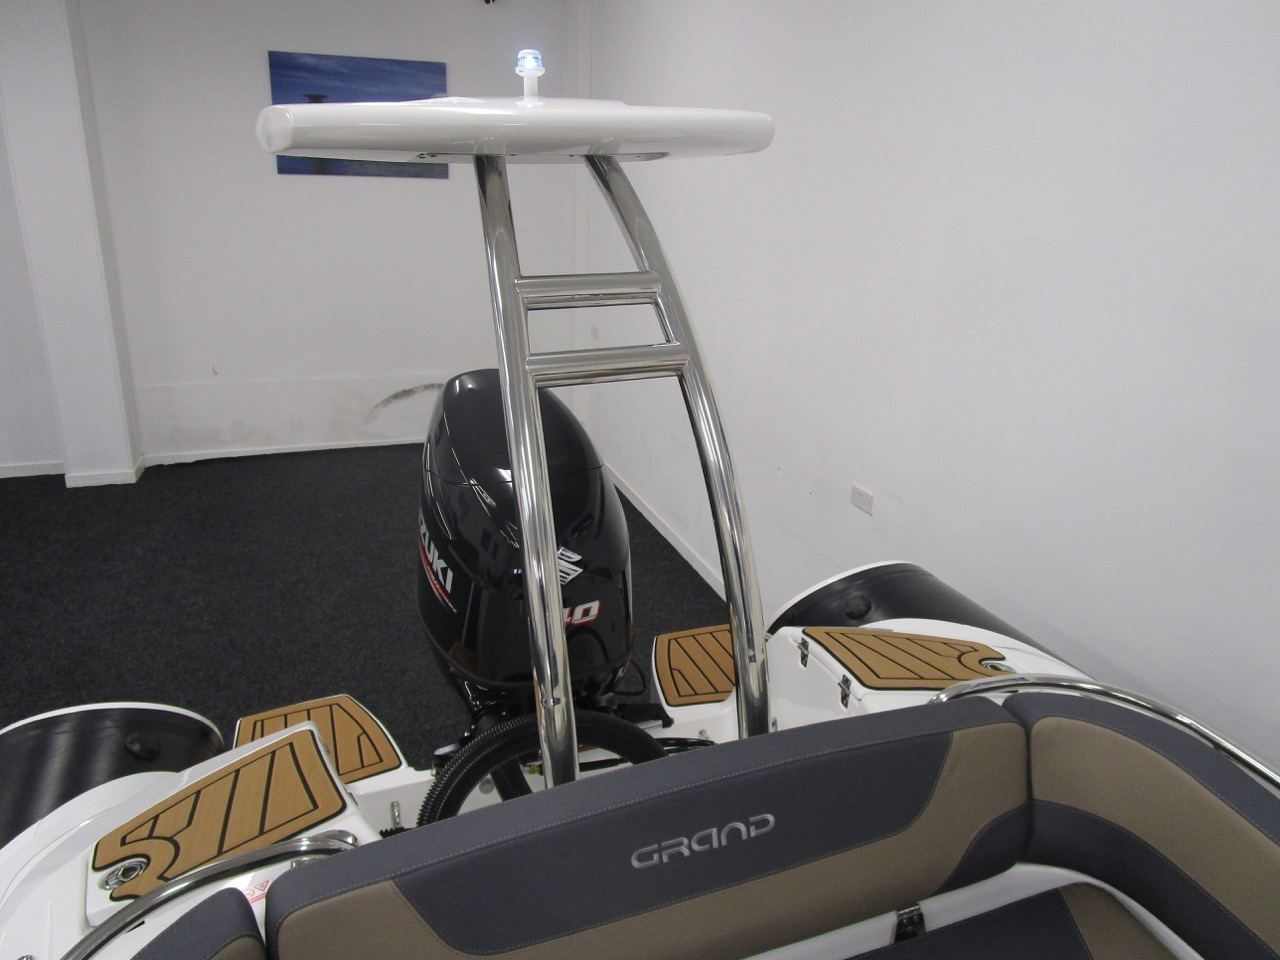 GRAND Golden Line G580 RIB Waterski tower and lights